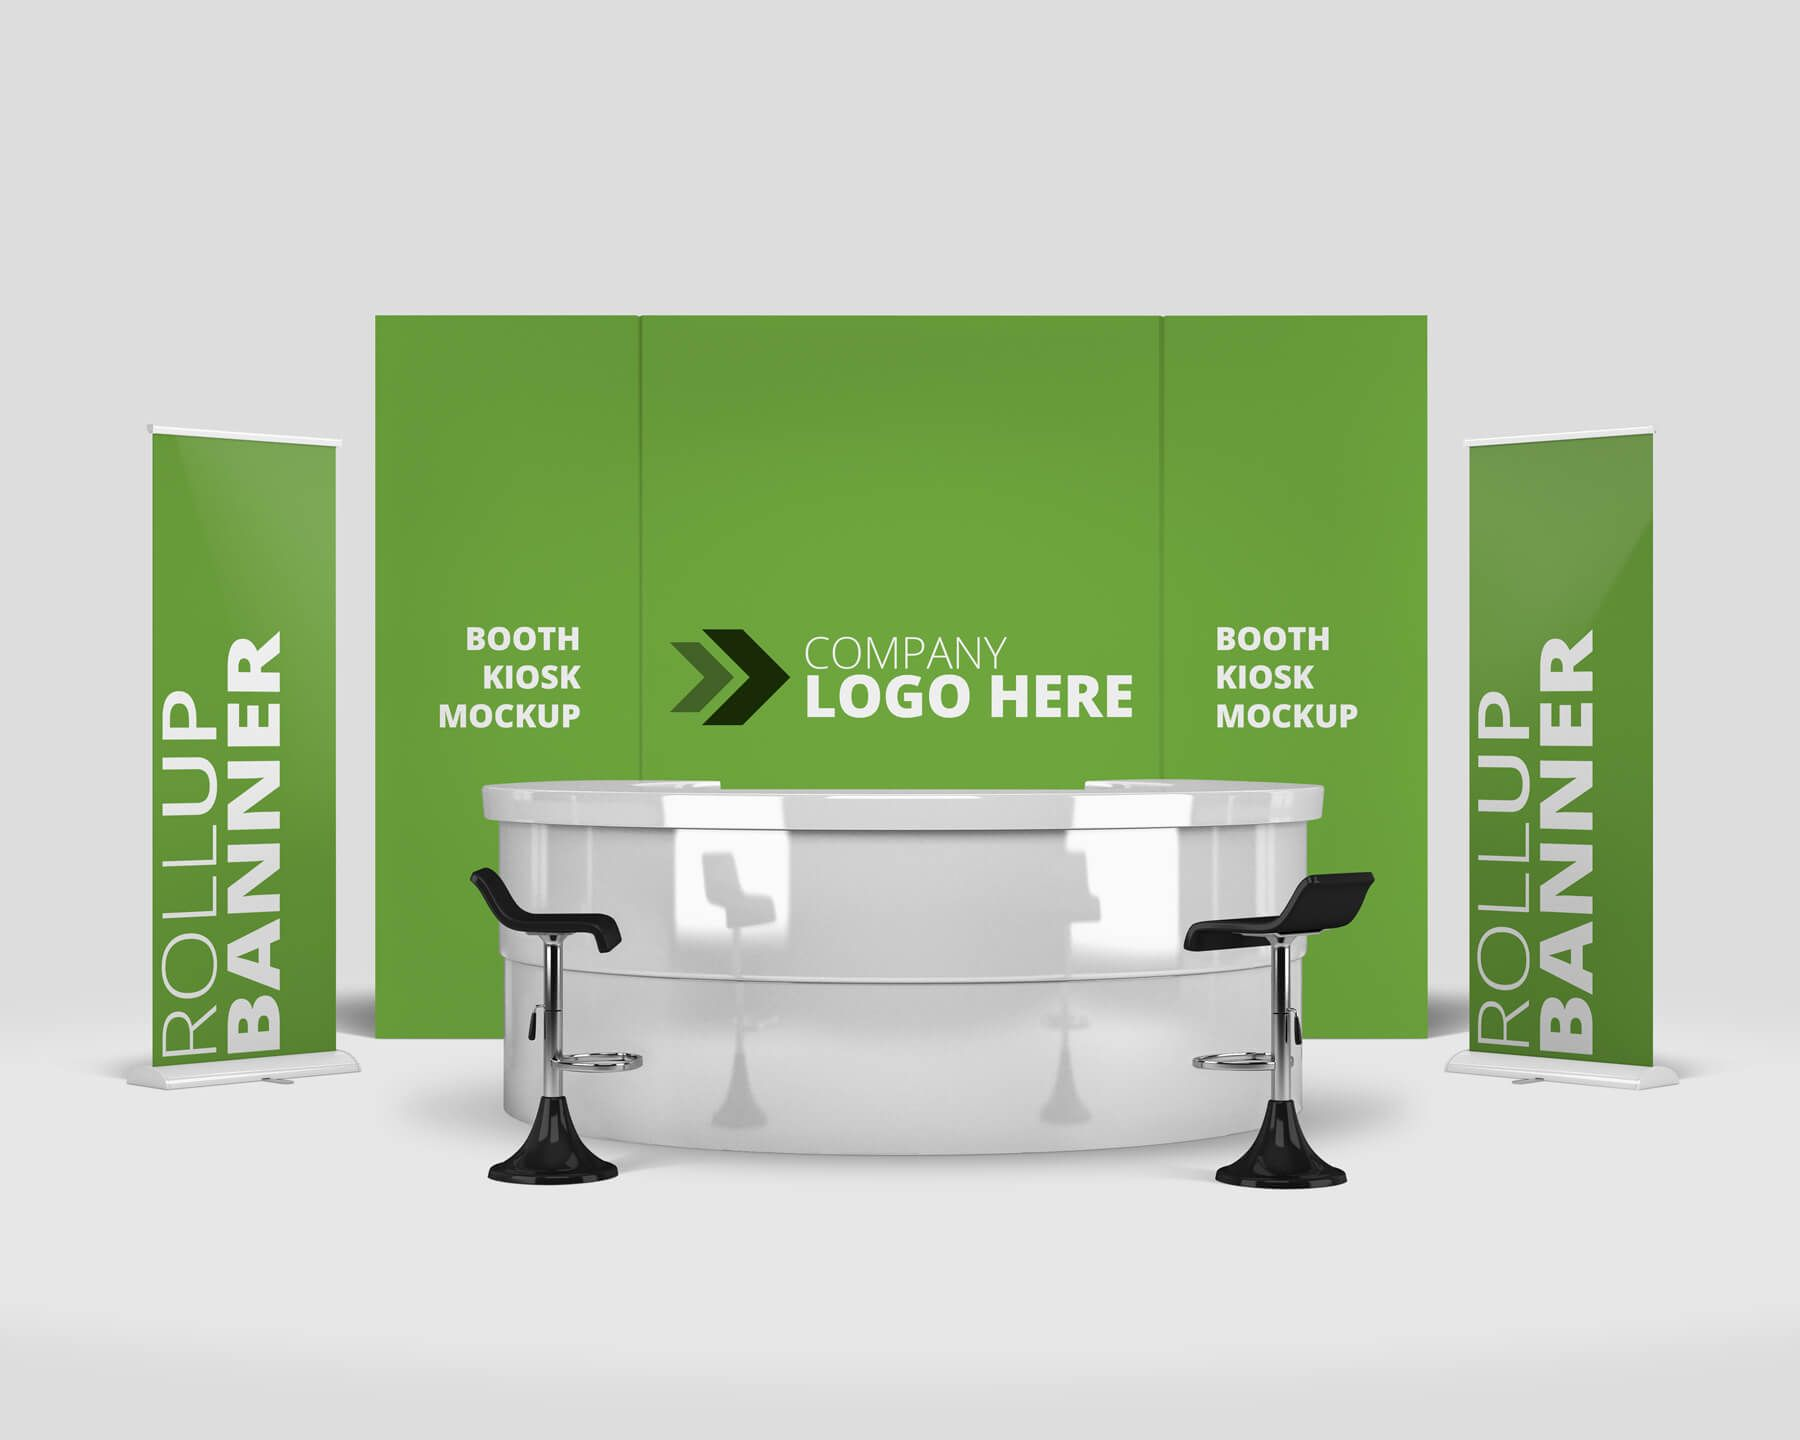 Exhibition Booth Psd : Customizable trade show exhibition booth mockups on